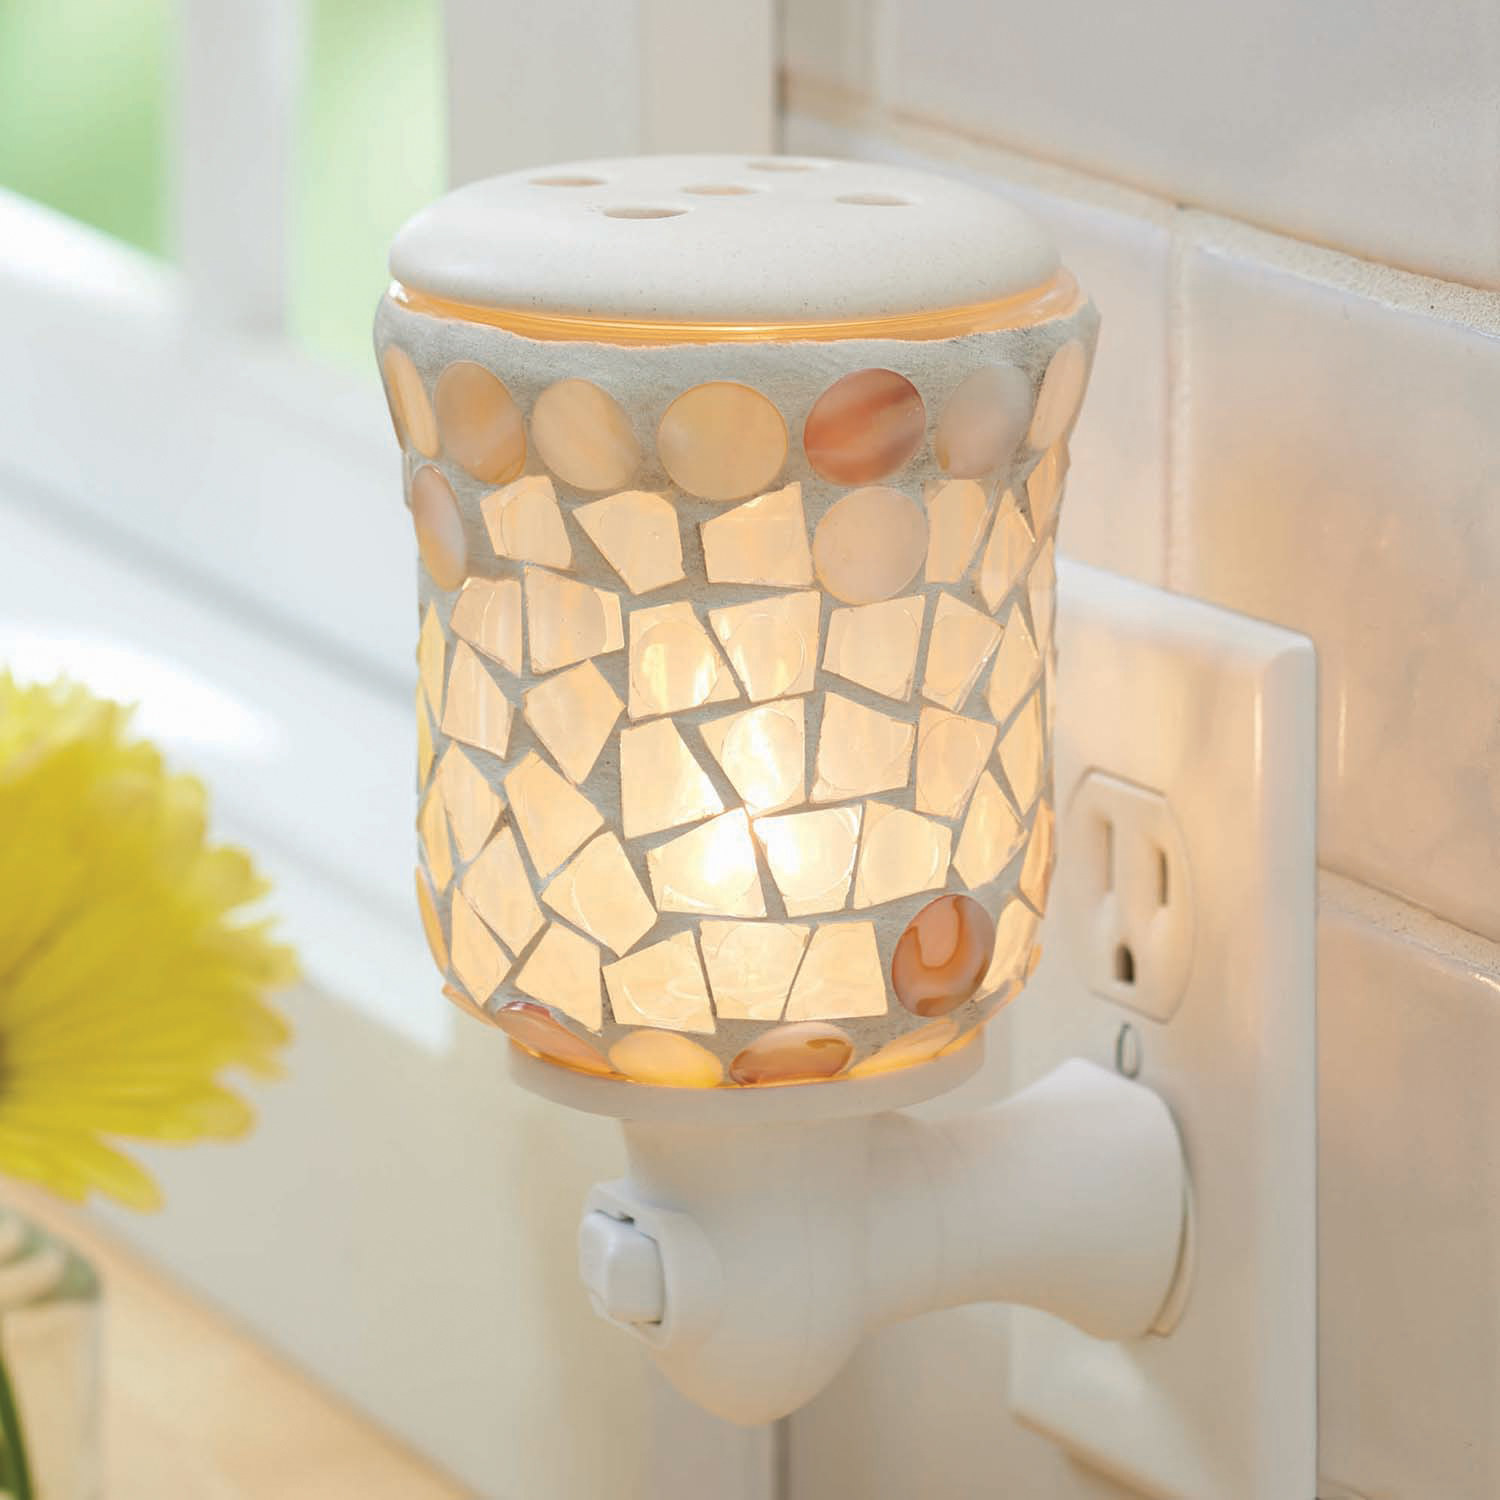 A ceramic patterned warmer plugged into the wall